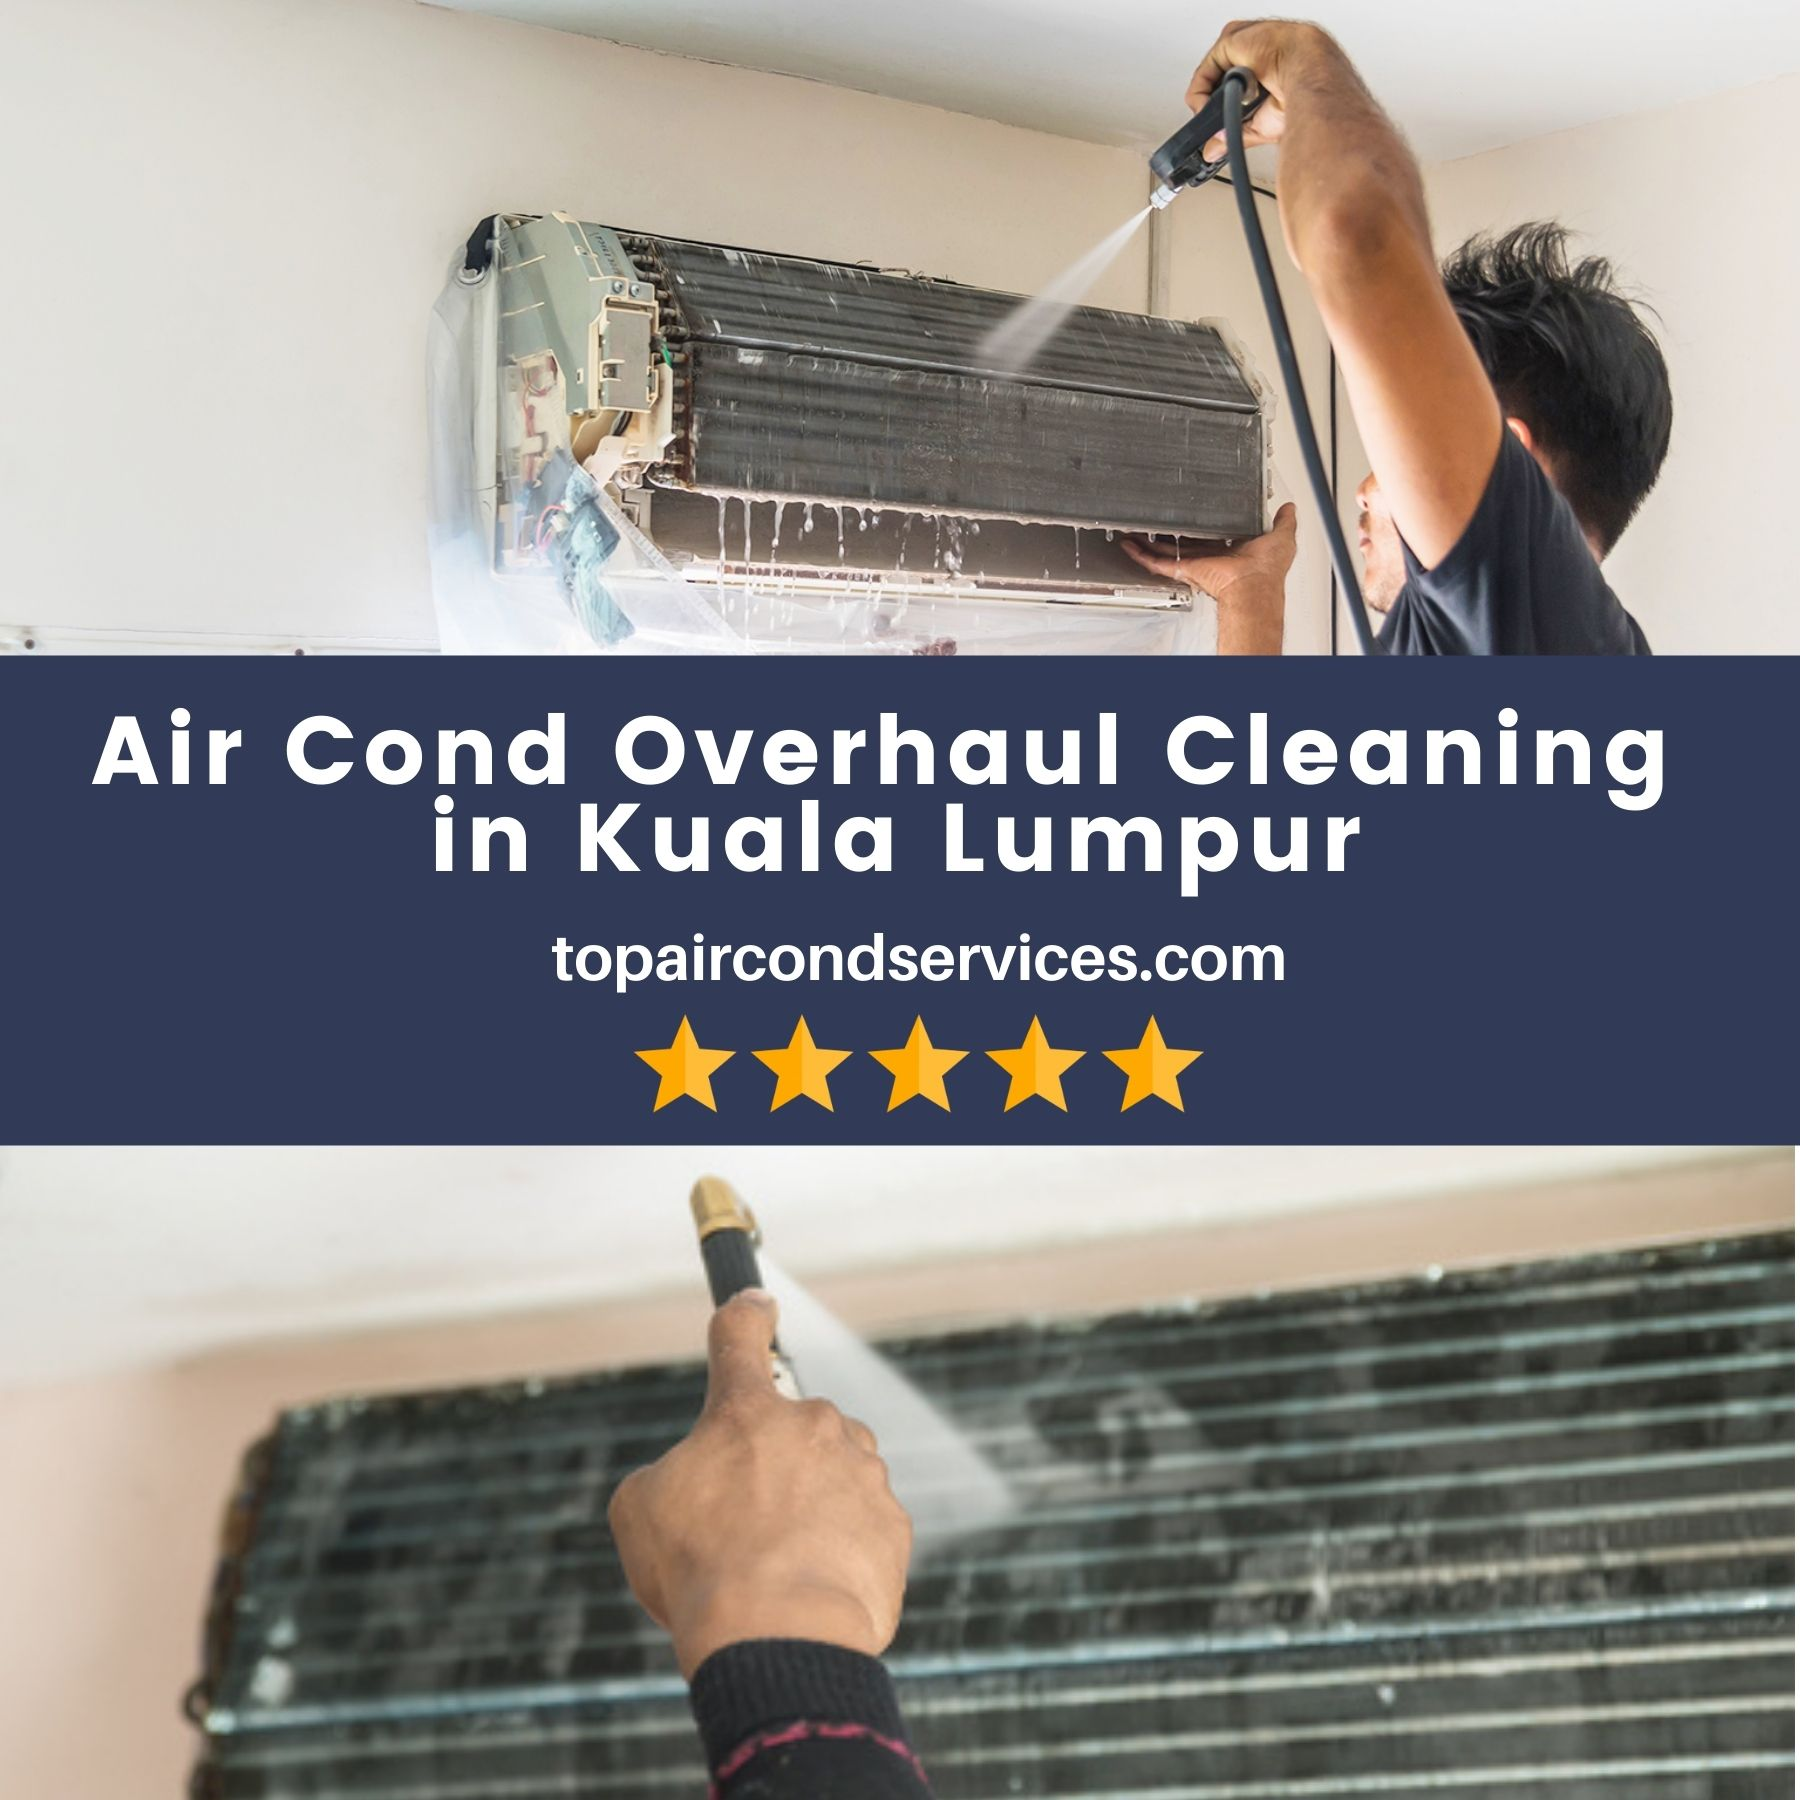 AirCond Overhaul Cleaning in KL